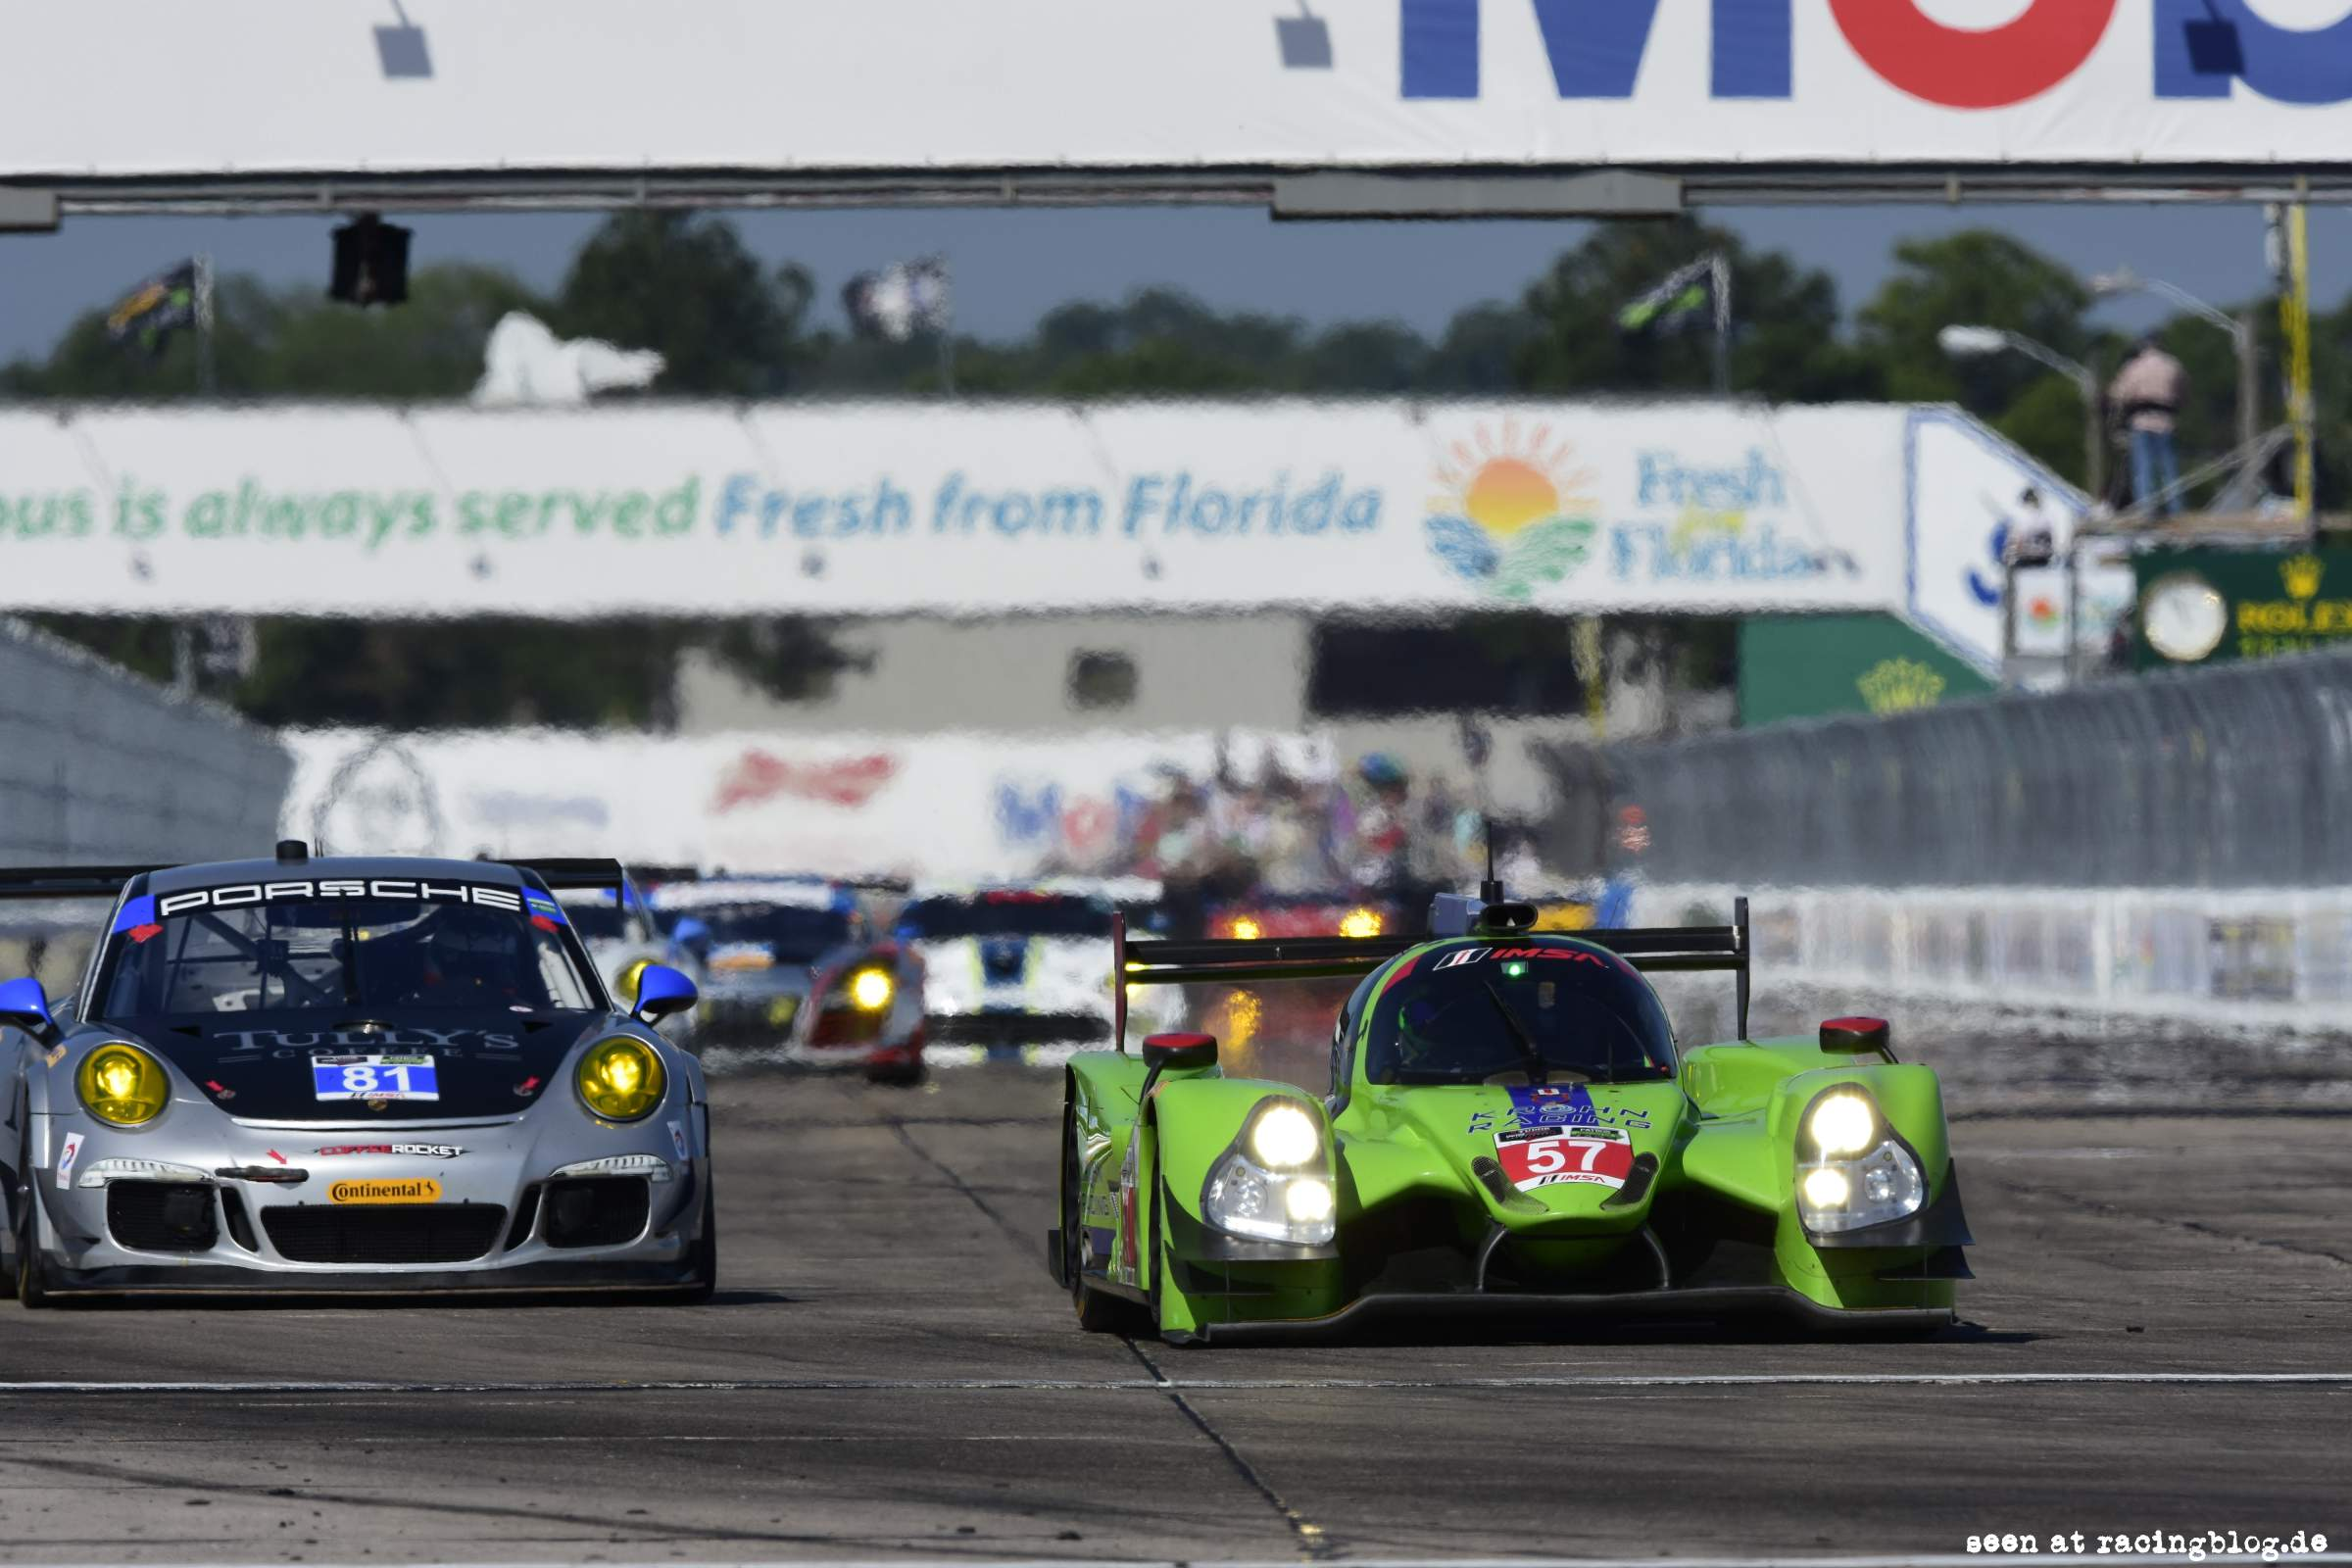 sebring chat Sebring, fl chat : are you from sebring-fl you are very welcome to join our weirdtowncom chat sebring, fl chat is the place where sebring-fl chatters come to chat with anyone from anywhere around the world.